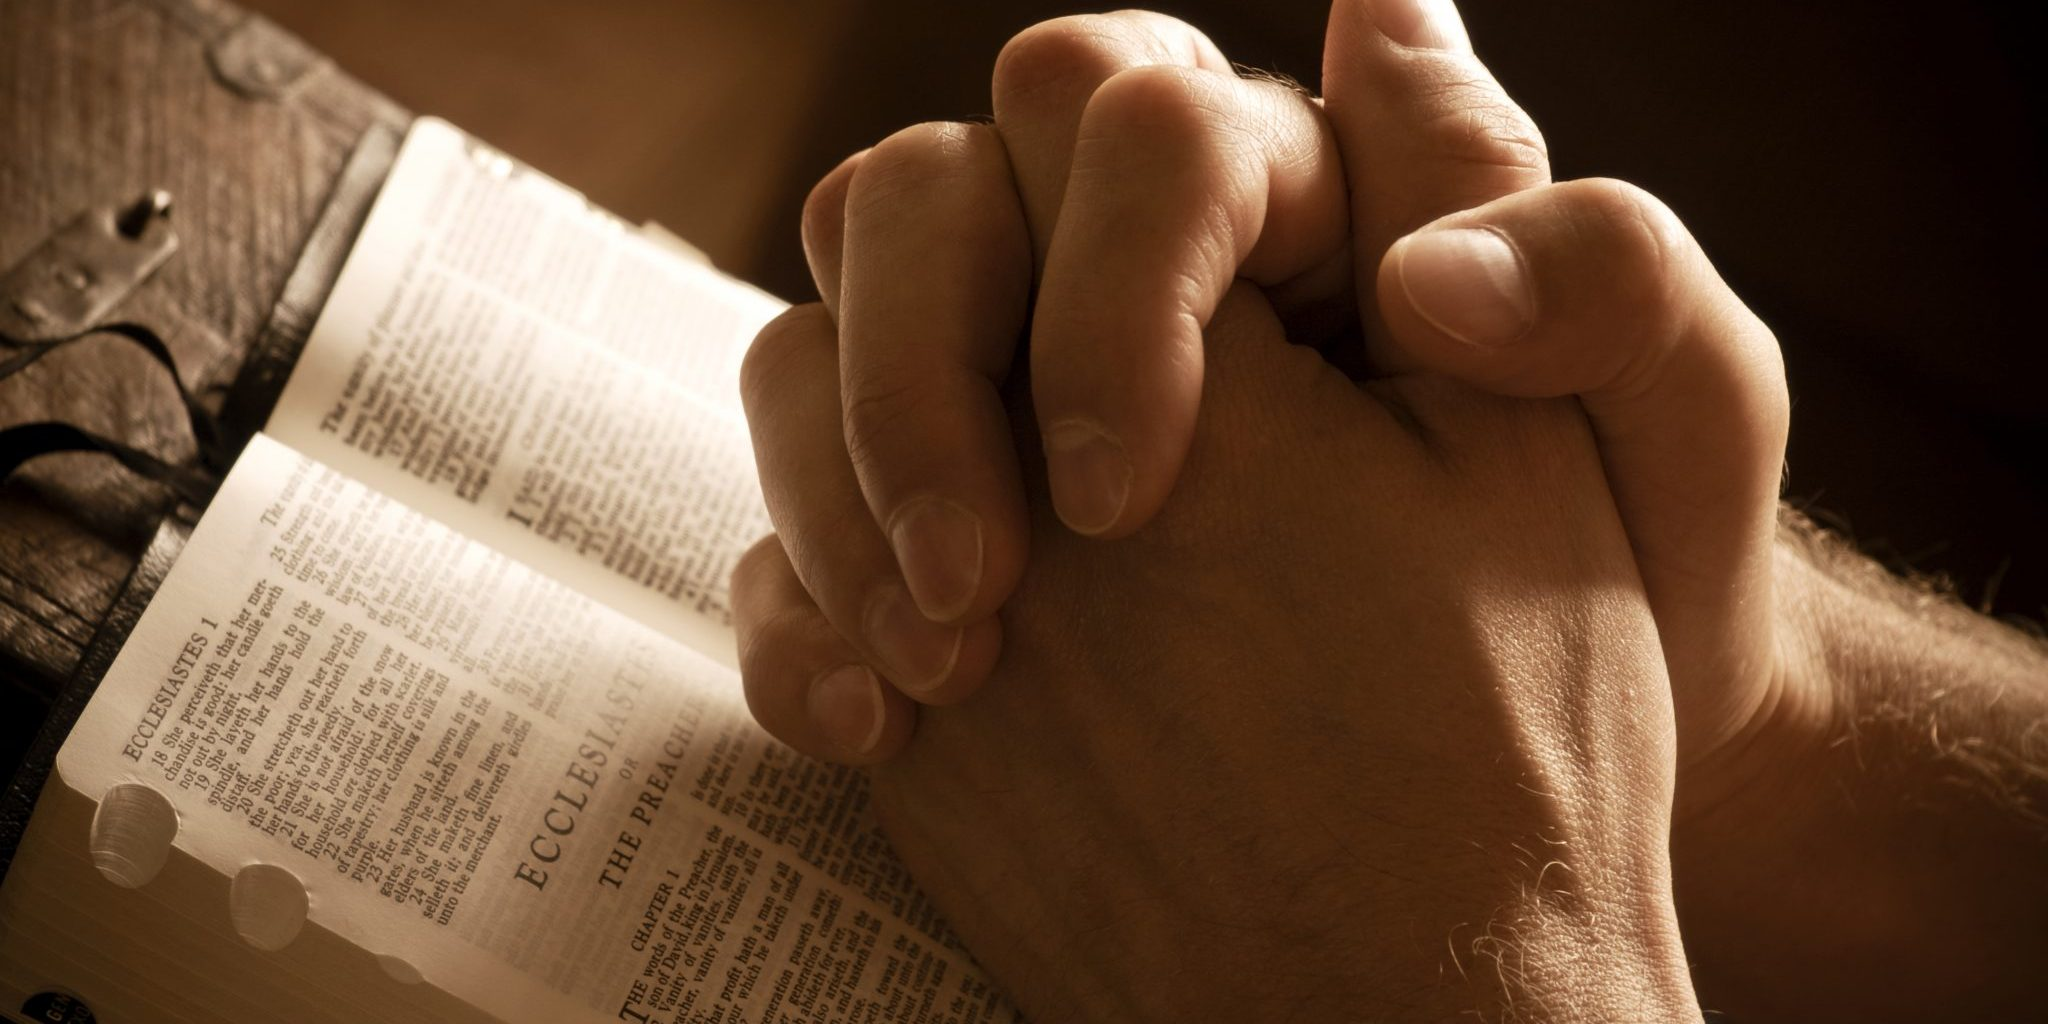 bigstock-Praying-Hands-On-An-Open-Bible-3407461